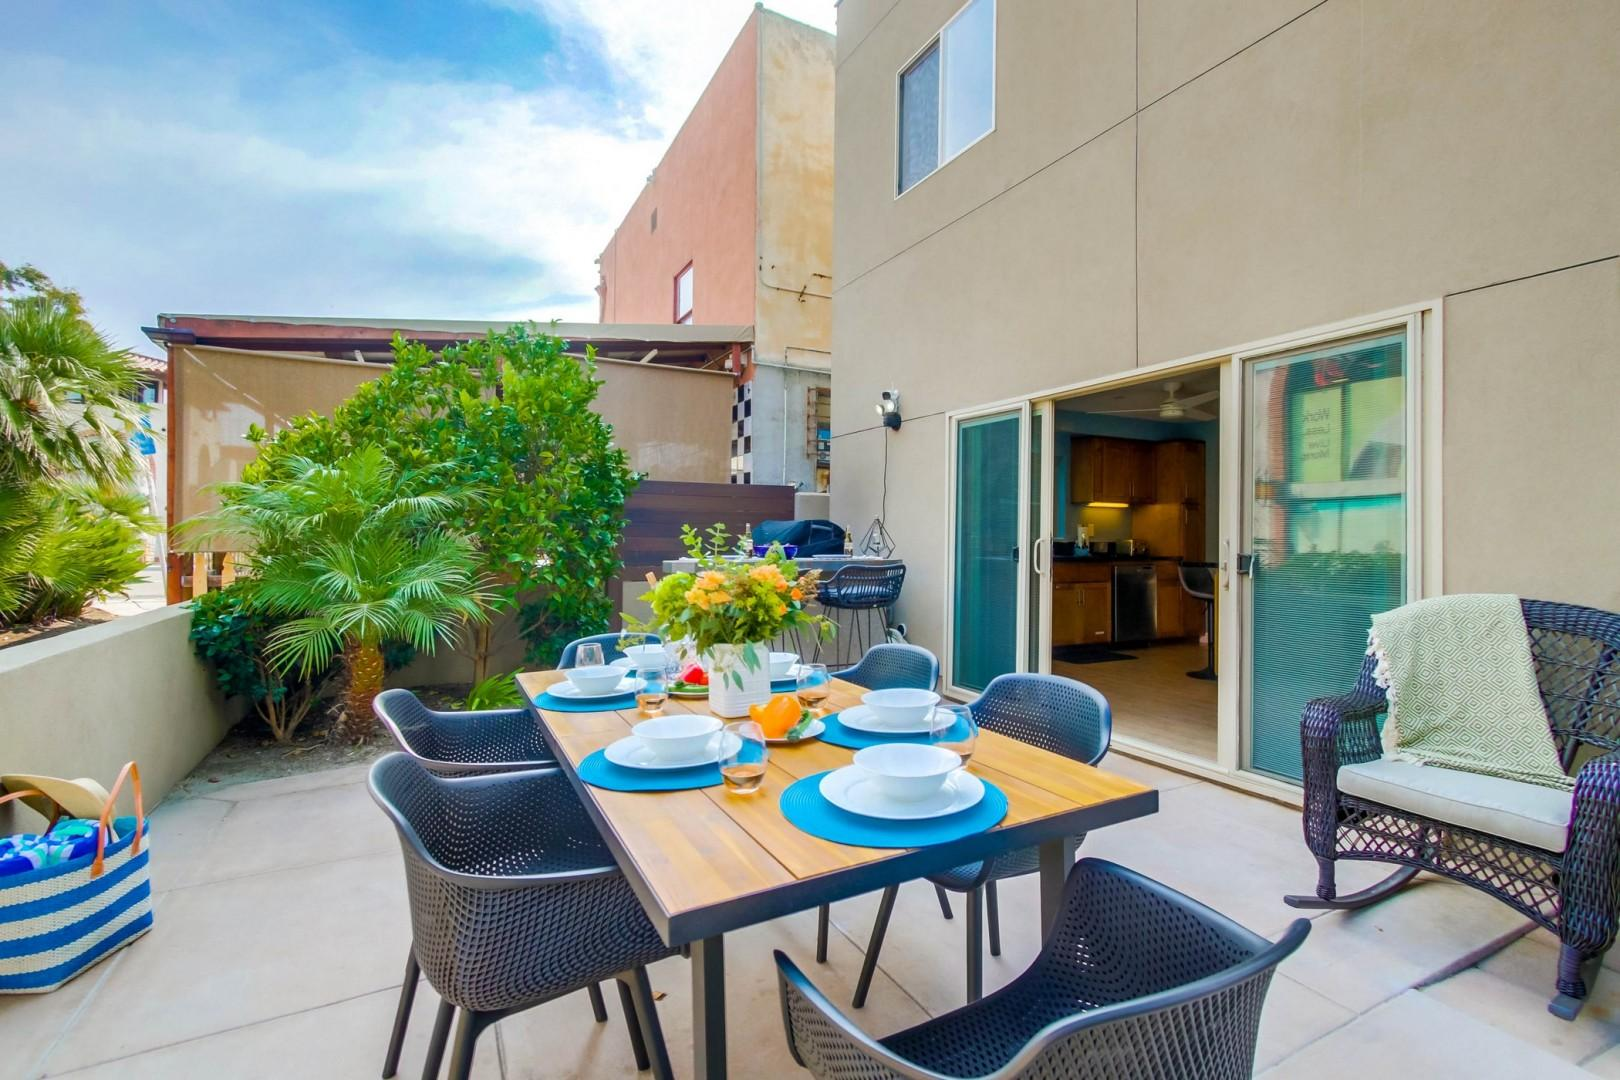 Outdoor dining with gas BBQ